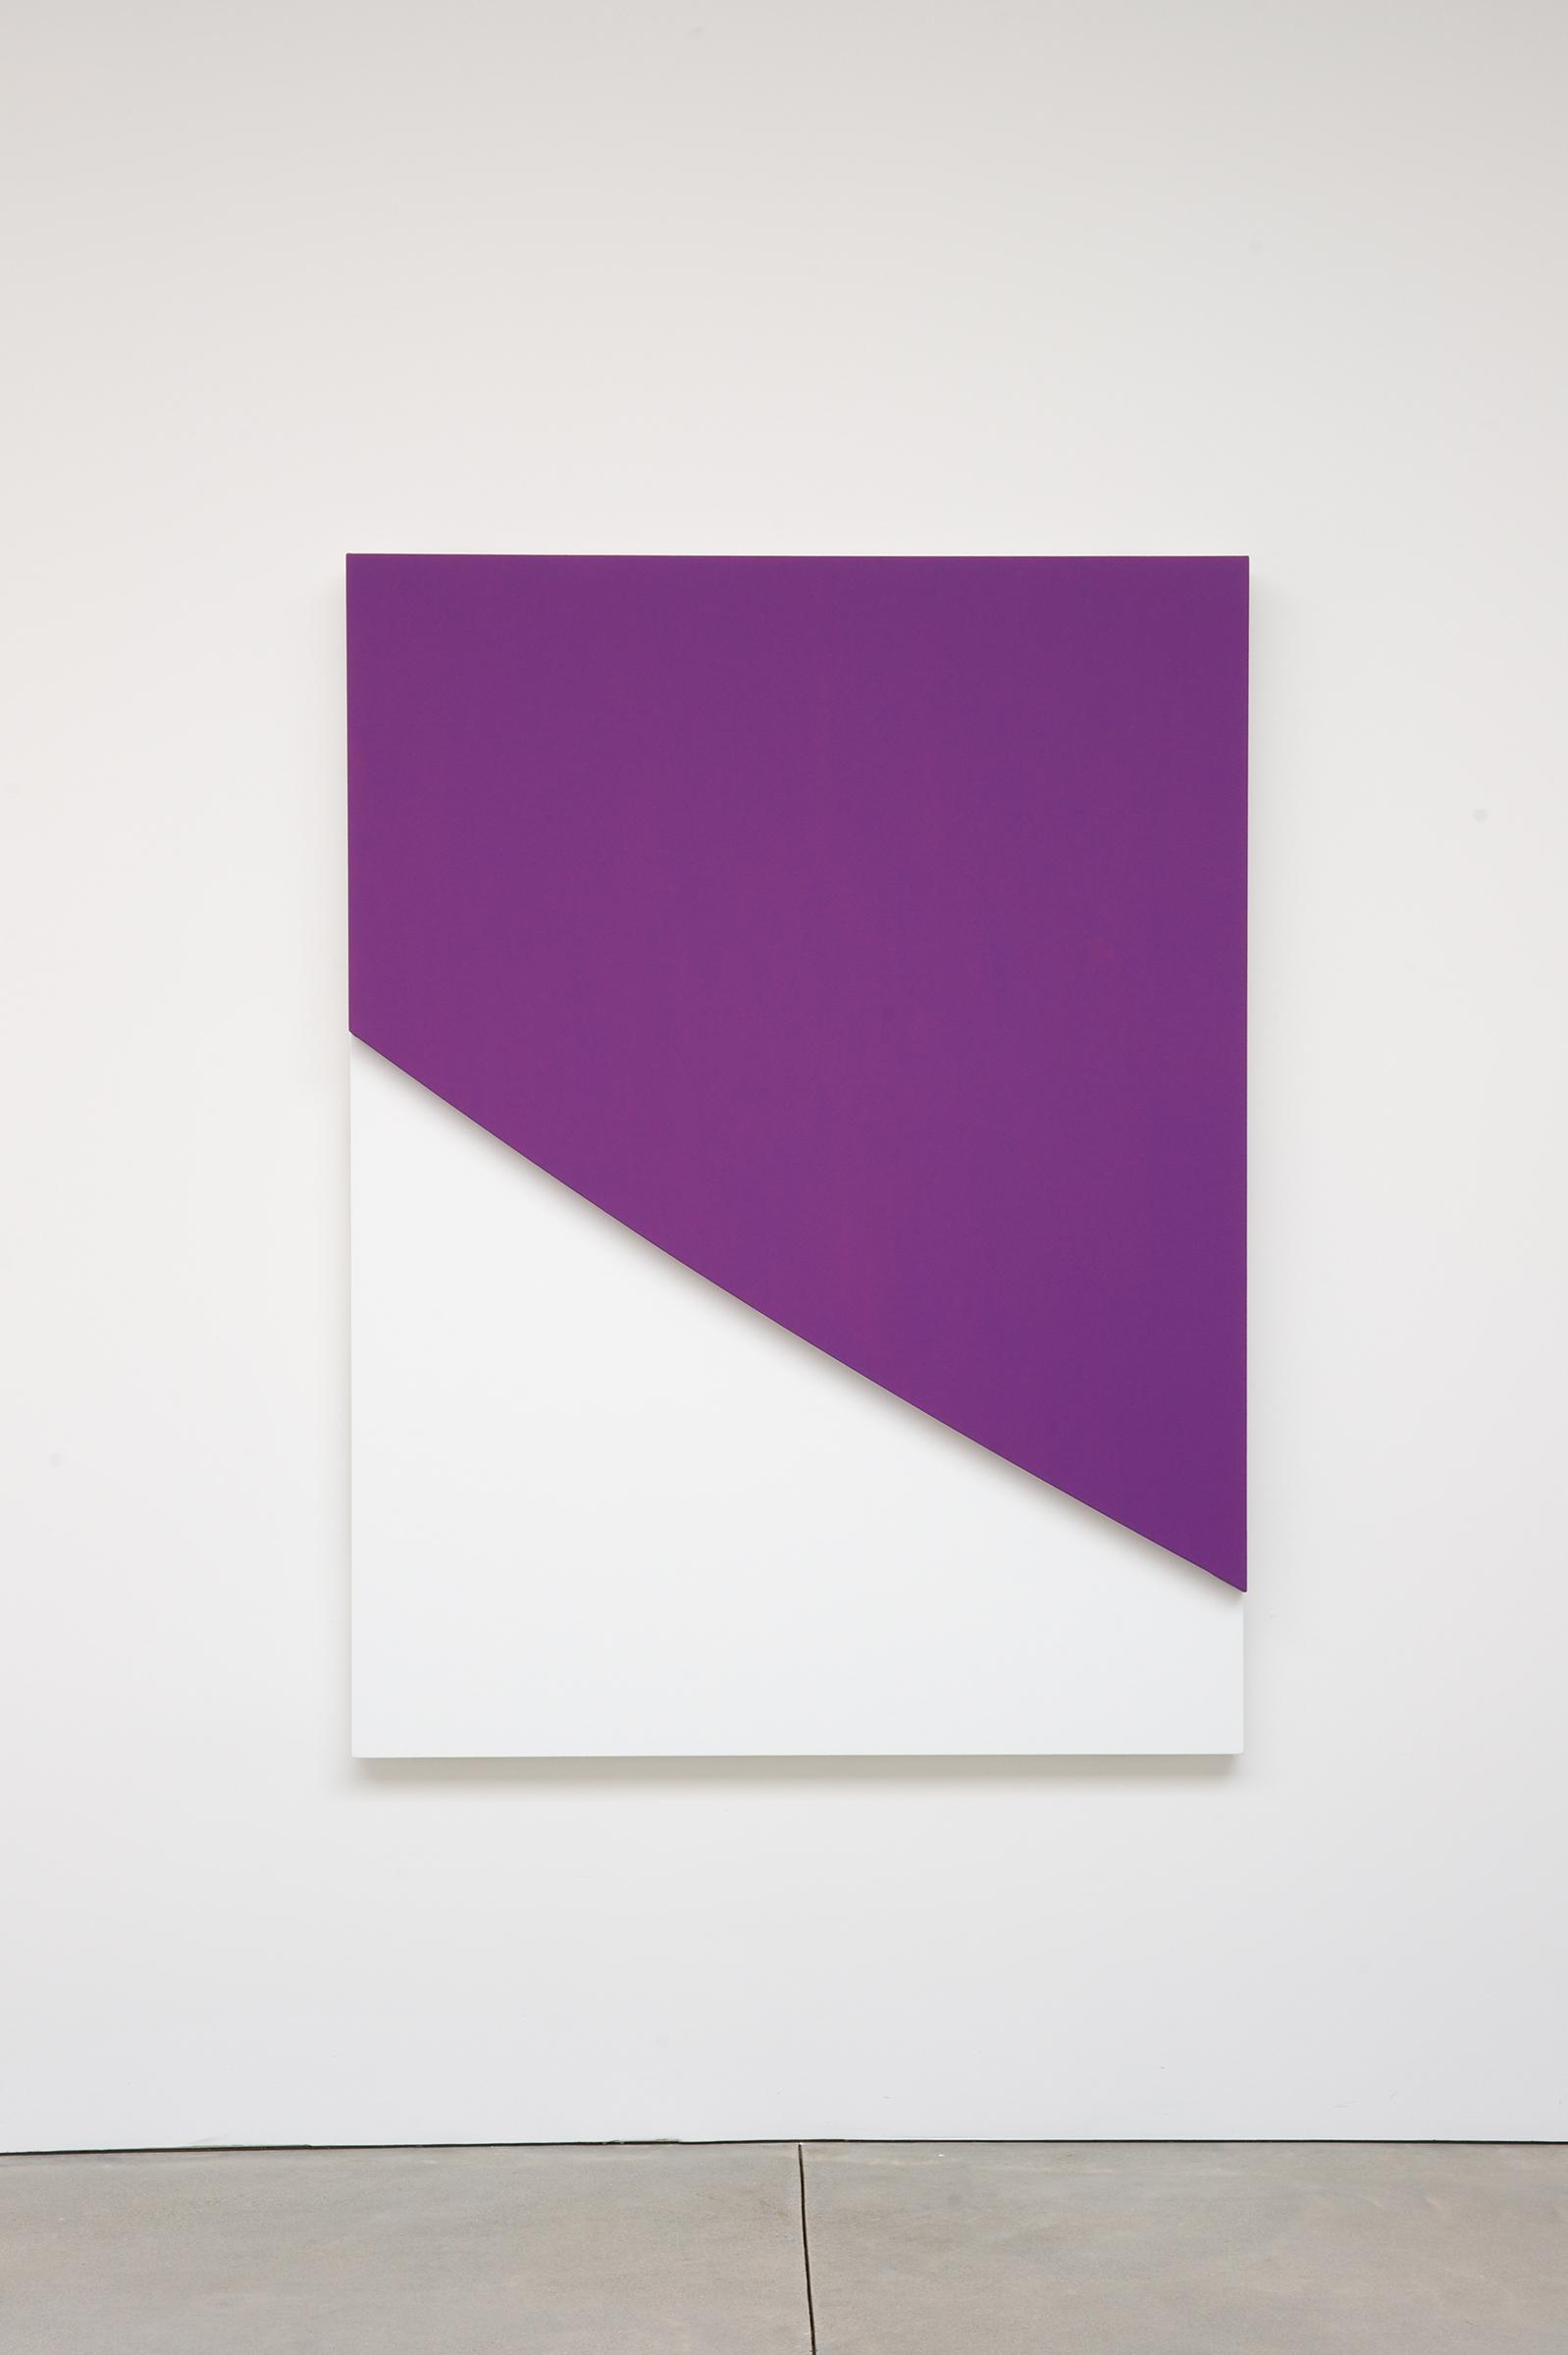 Purple Curve in Relief, 2009. Oil on canvas, two joined panels